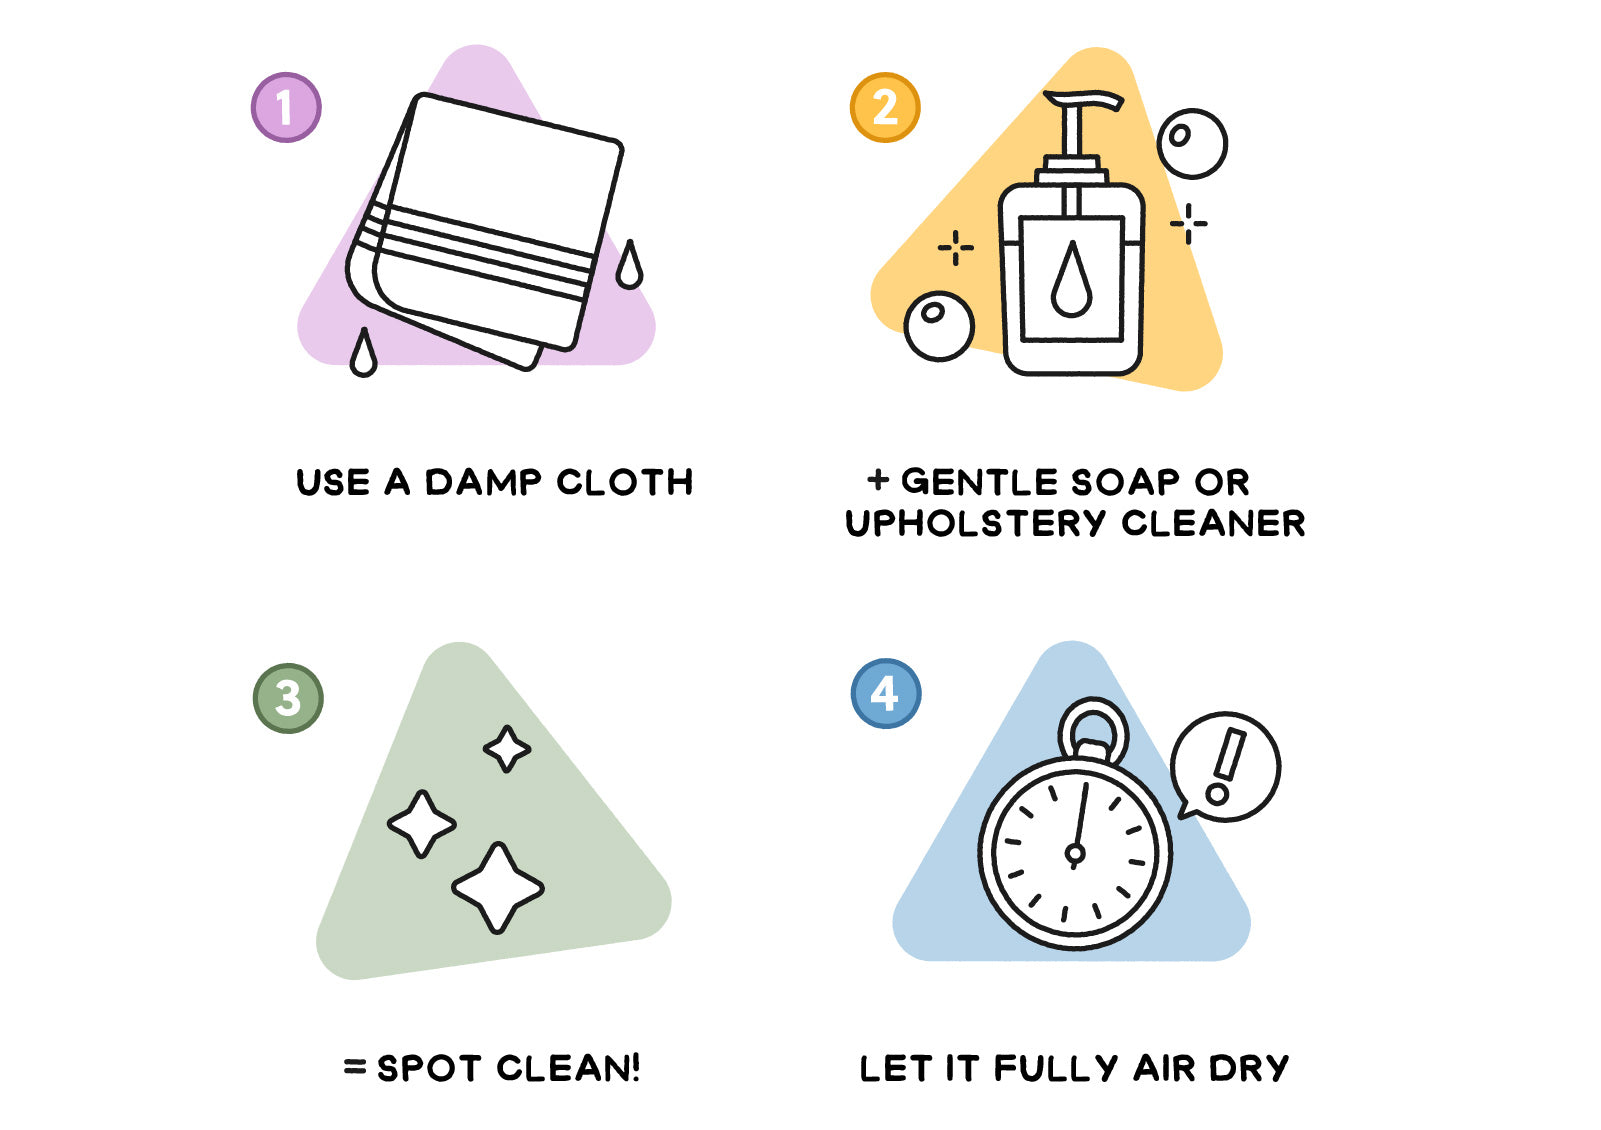 Steps to care for foam: 1) Use a damp cloth 2) Add gentle soap or upholstery cleaner 3) Spot clean and 4) Let it fully air dry.